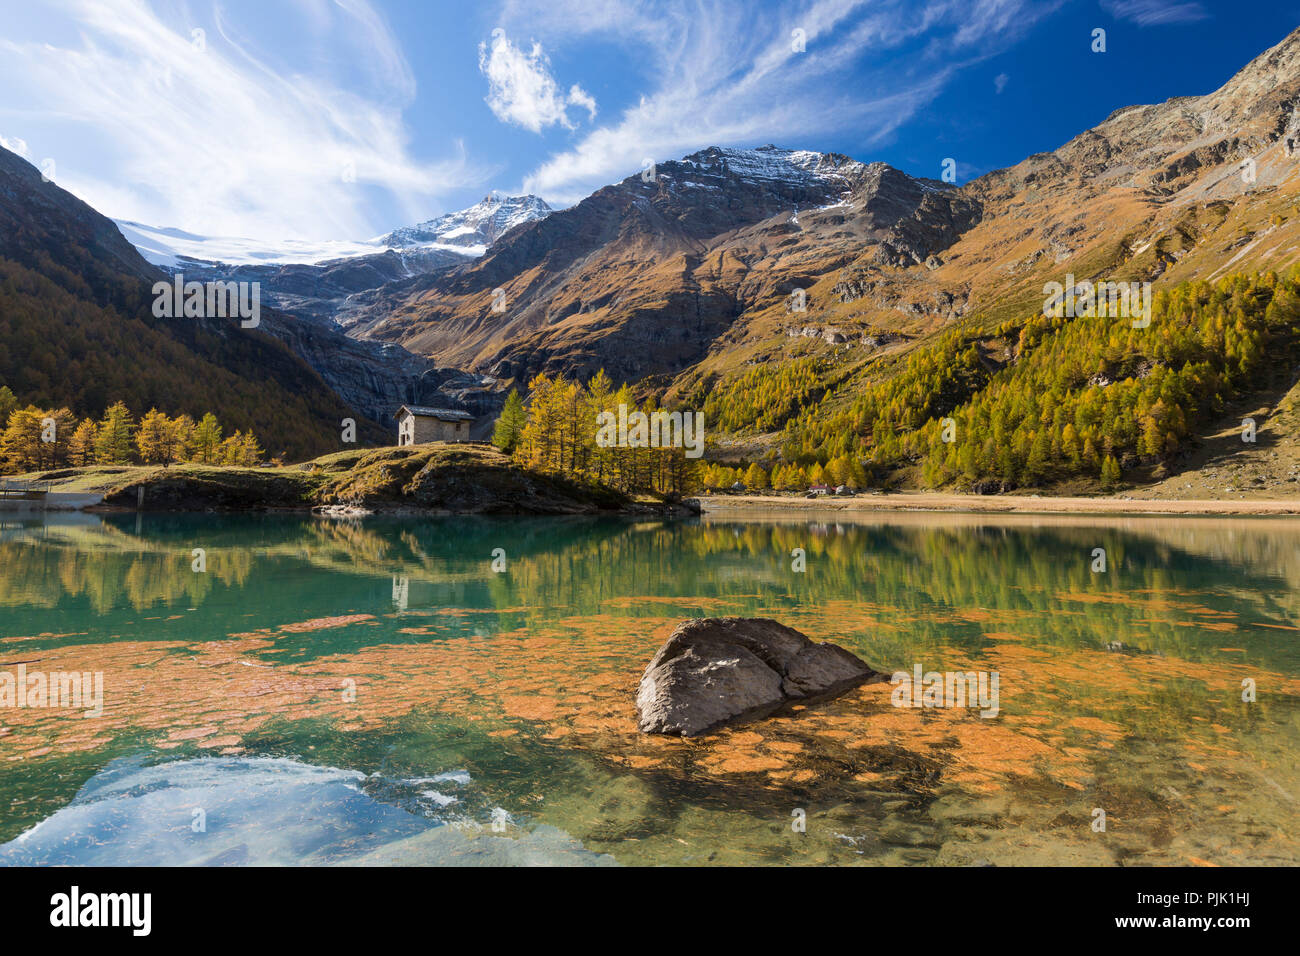 The afternoon sun bathes the area around the reservoir Lago Palü on the Alp Grüm near Poschiavo in an autumnal light, canton Grisons, Switzerland, - Stock Image